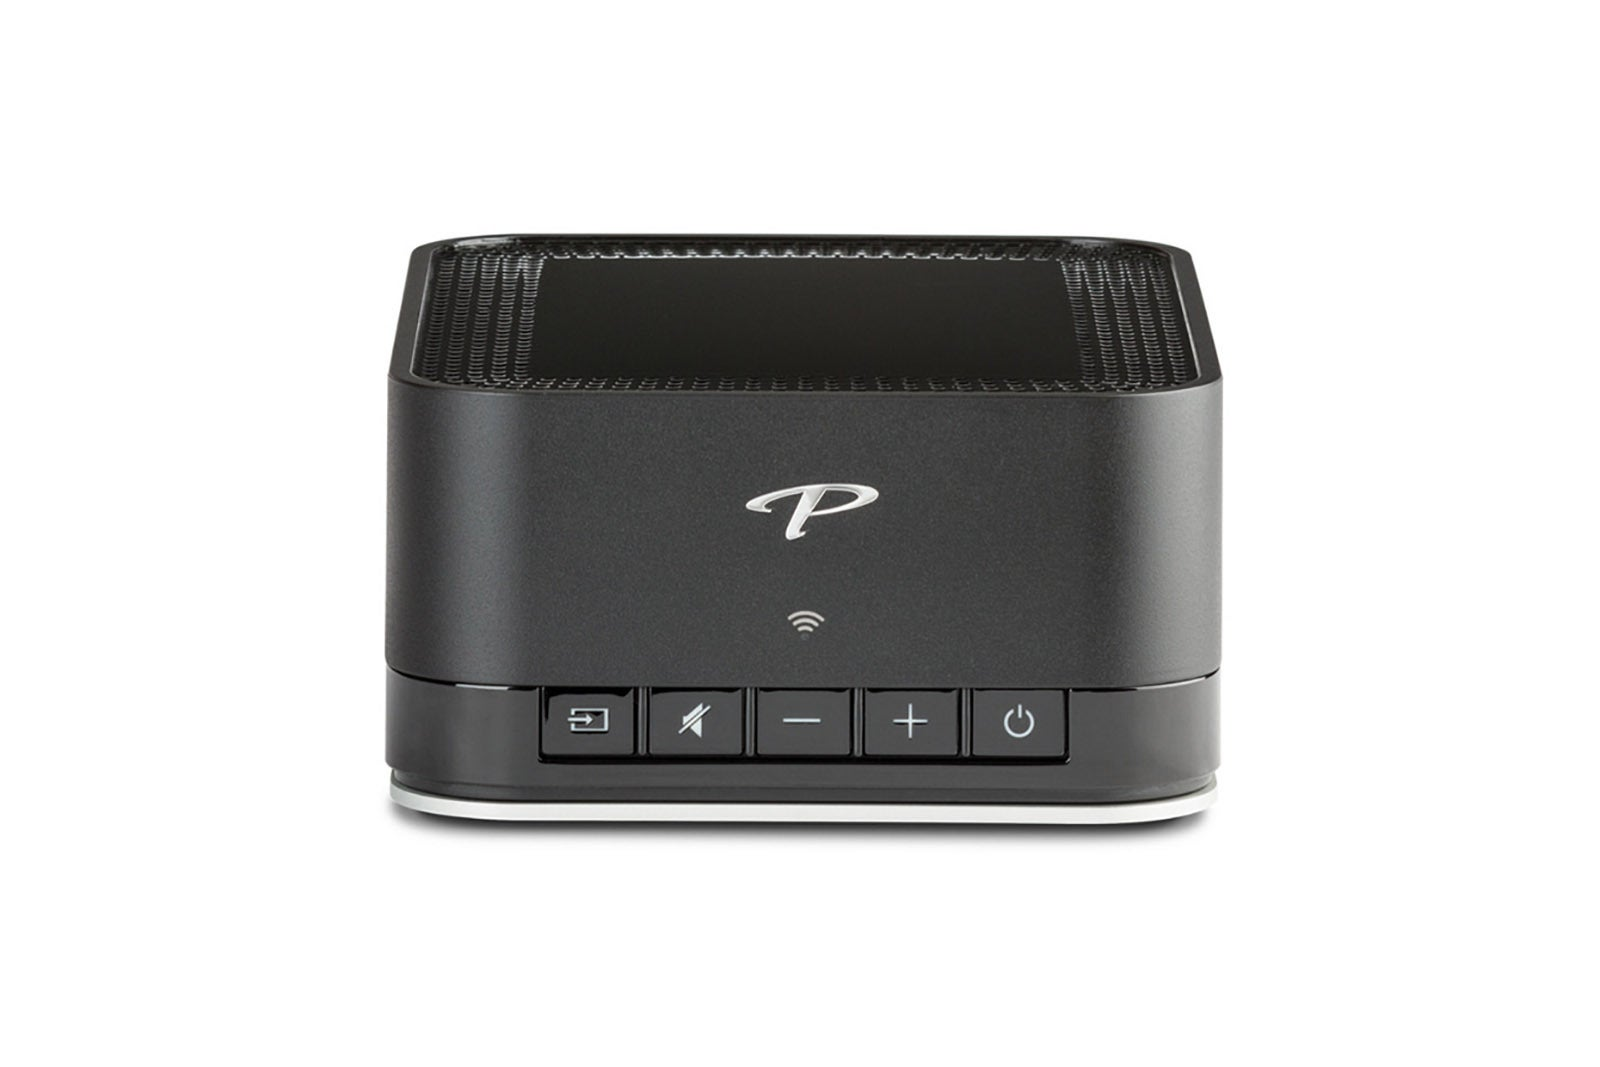 Paradigm Pw Amp Review A Great Dts Play Fi Amplifier For Any Many Ways To Wire Subwoofers And Amplifiers The Ideal Is Match Subs Speakers Techhive